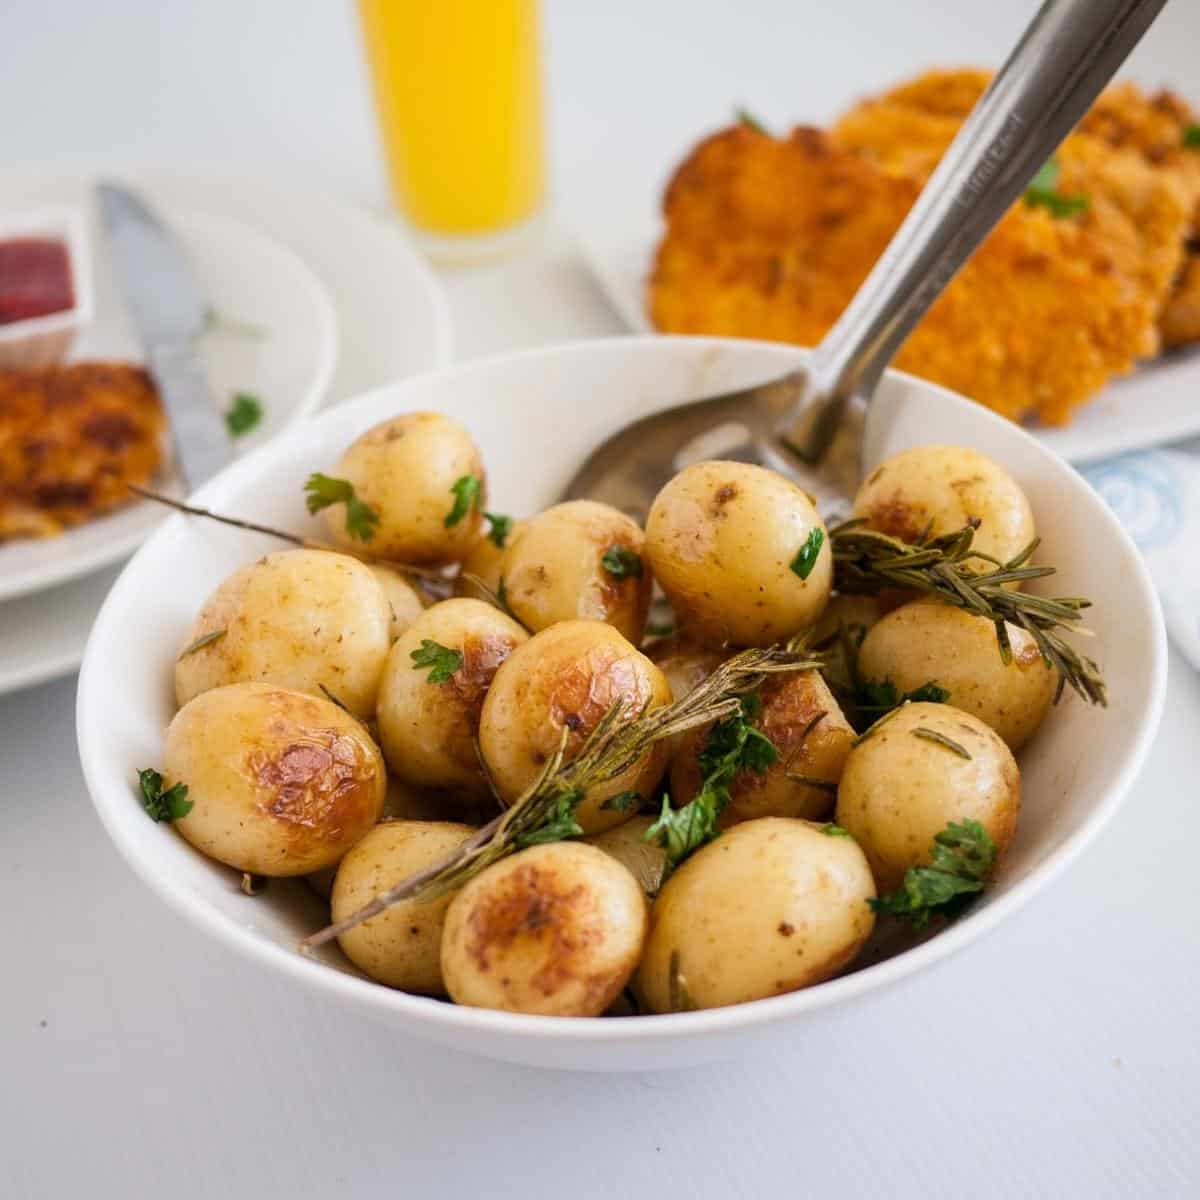 A bowl with roast potatoes